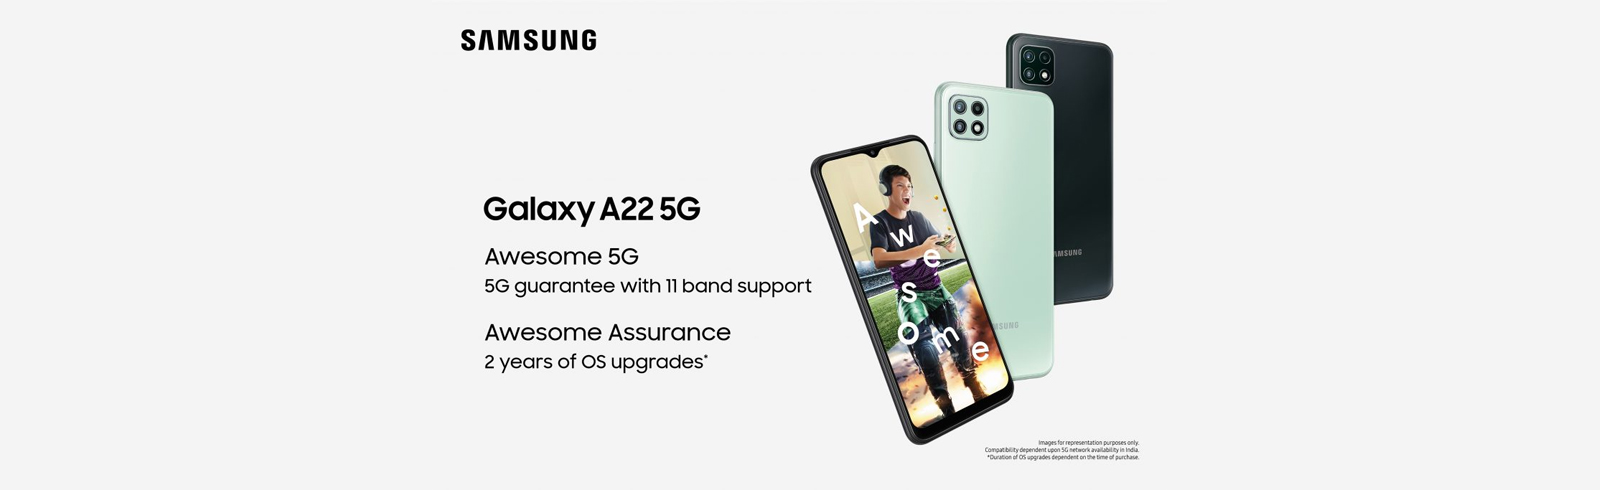 The Samsung Galaxy A22 5G goes official in India